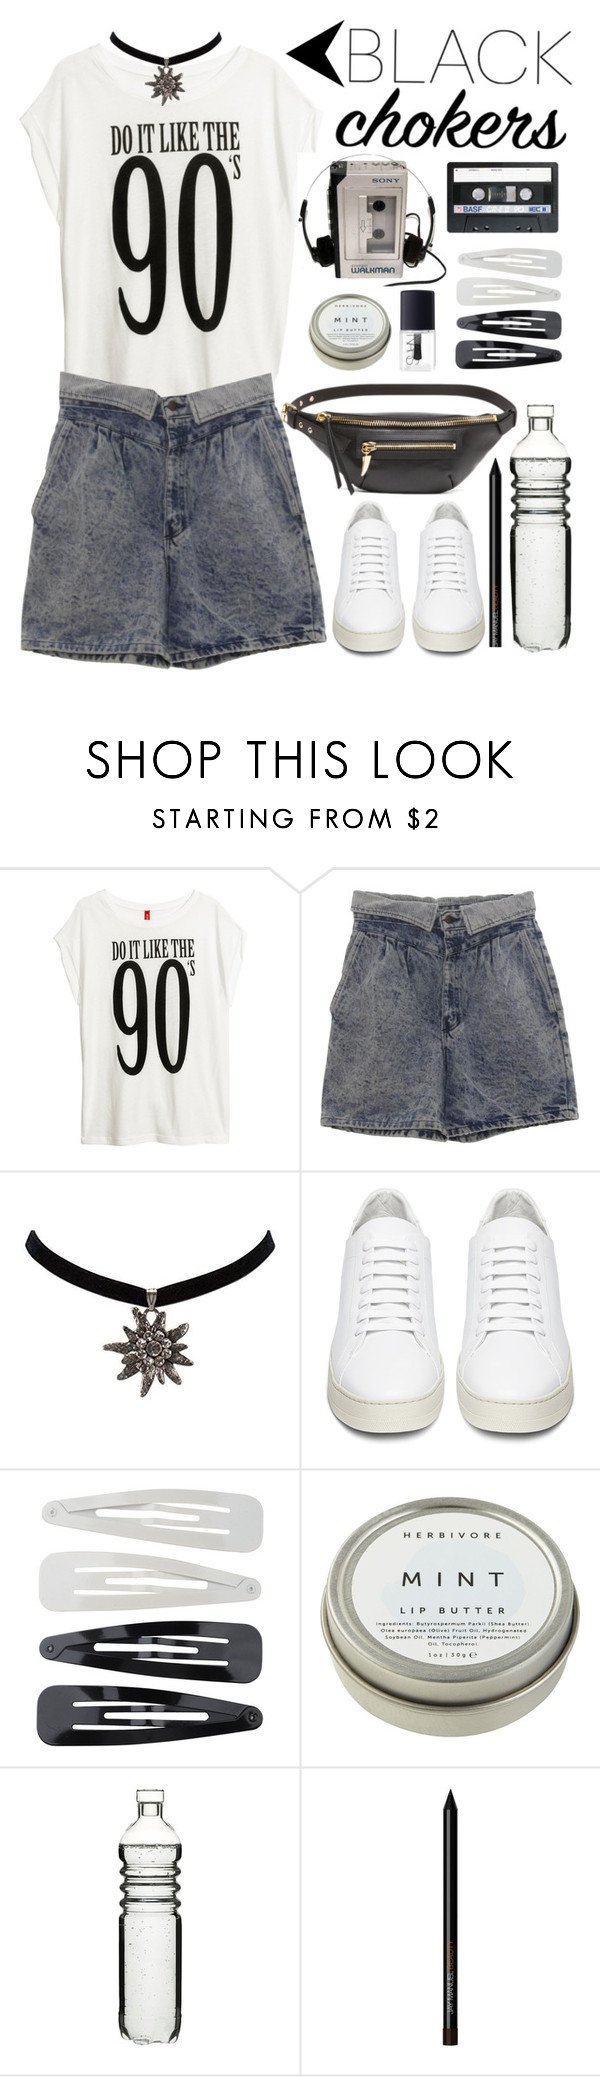 """Black Choker"" by sebi86 ❤ liked on Polyvore featuring H&M, Retrò, Off-White, Forever 21, CB2, Dot & Bo, NARS Cosmetics and blackchokers"